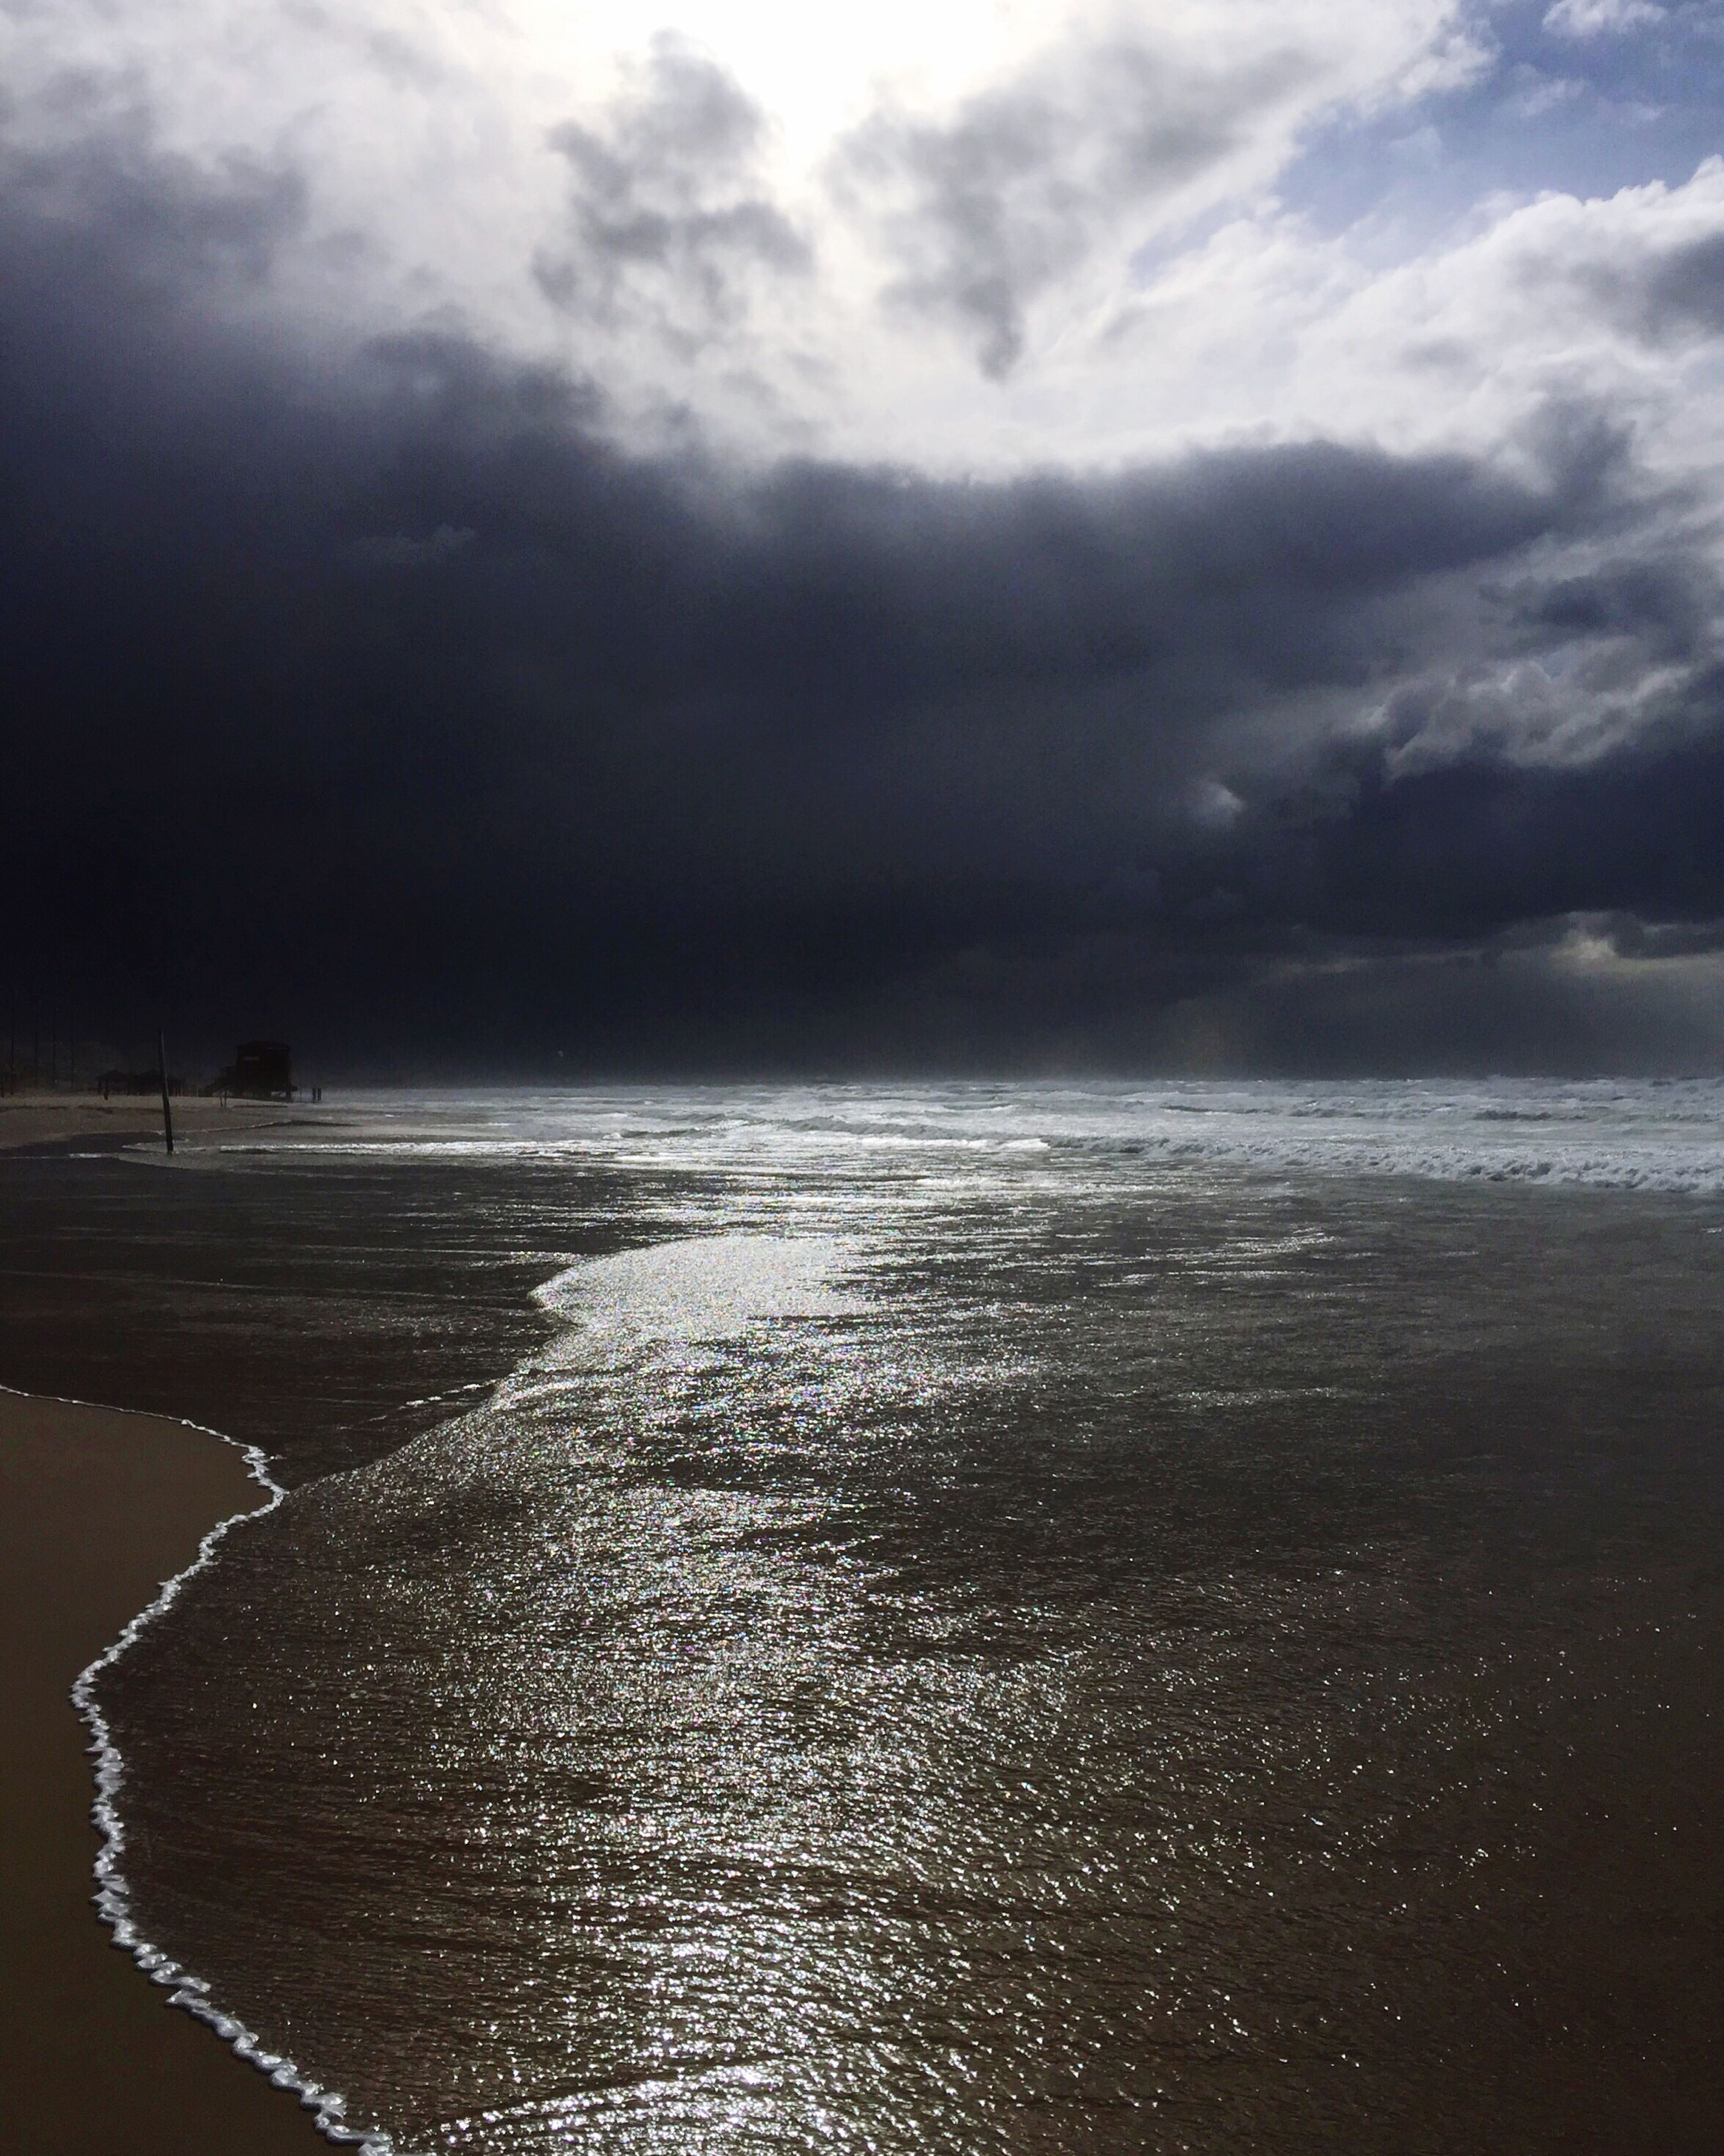 sea, horizon over water, water, sky, beach, tranquil scene, cloud - sky, scenics, tranquility, beauty in nature, shore, cloudy, nature, sand, cloud, idyllic, weather, coastline, wave, seascape